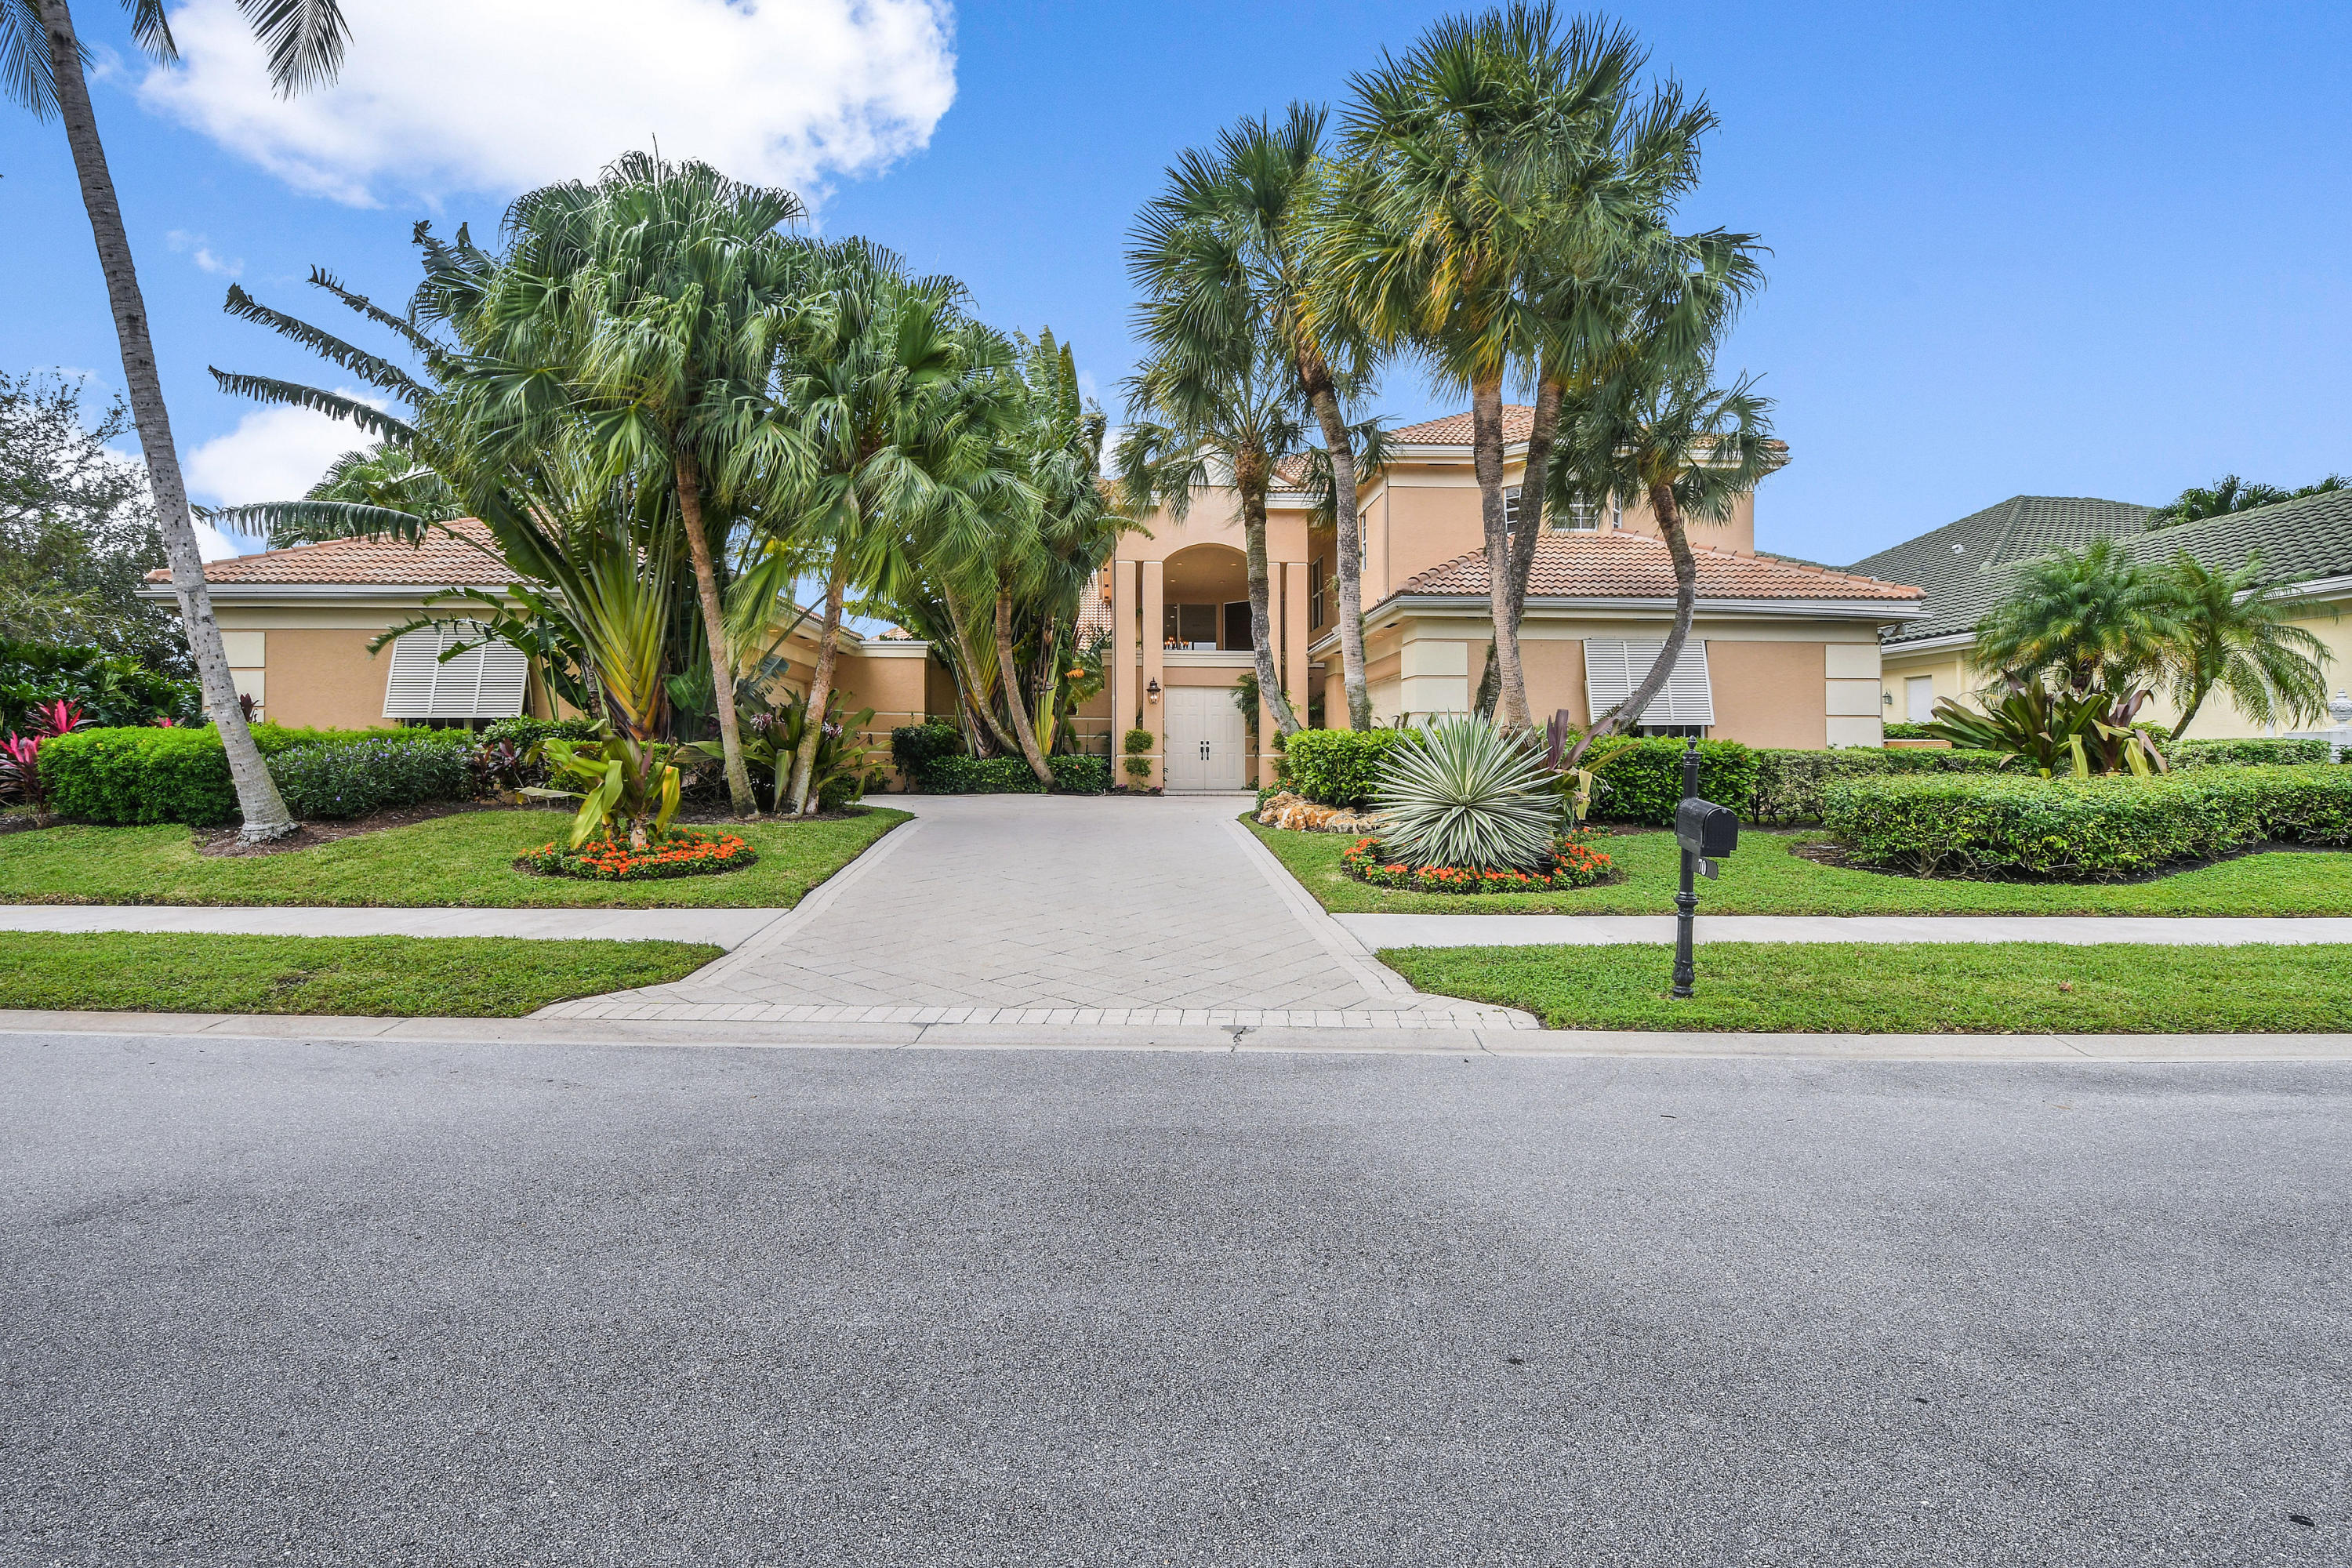 Luxury Living in a beautiful spacious custom home with spectacular Panoramic golf views and private corner lot. 5 Bedrooms 6.5 bathrooms, den and two 2 car garages. Over 6,400 sqft /4,500 sqft under air open floor plan, marble floors, enjoy panoramic golf view with soaring 22 ft ceilings, gourmet granite kitchen, island, s/s appliances and brand new subzero. Double entry oversized Master suite with new hardwood floors, his and hers marble bathrooms and his and hers California closets. All 4 guest bedrooms have on suite baths. Oversized tropical patio with large custom pool with southern exposure provides ultimate sunny relaxing allure, summer kitchen and guest house. Custom French pattern marble patio added to rear of the home for entertaining and spectacular sunsets. Furniture Negotiable. Numerous upgrades 2019 New Roof, 4 A/C units, 2 water heaters, pool pump and impact glass. Well maintained and move in ready.